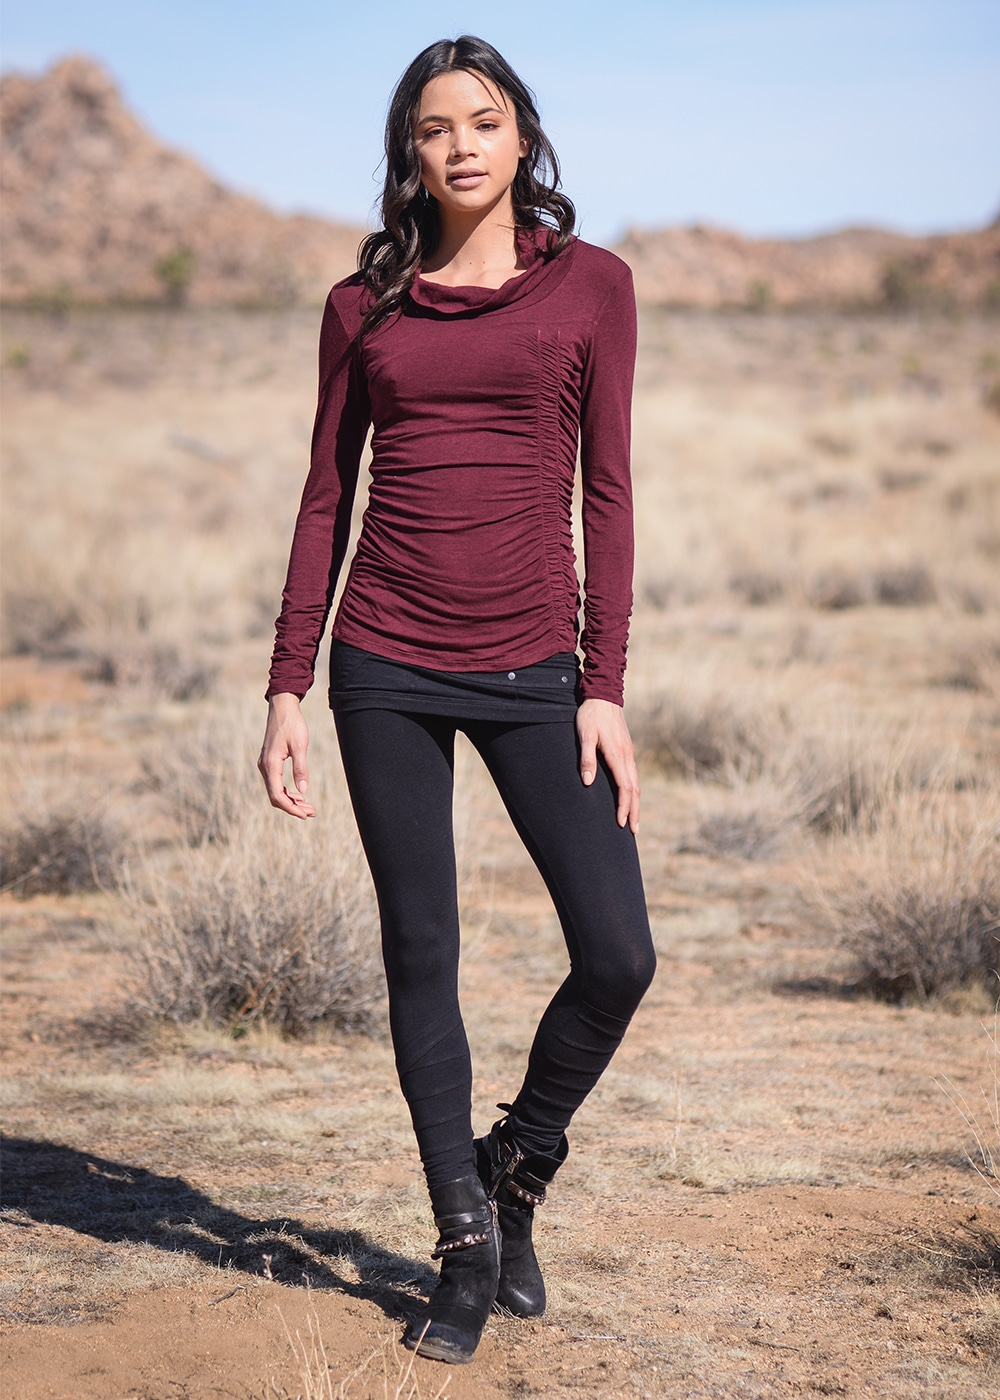 Bamboo and Organic Cotton Willow Tee in Red by Nomads Hemp Wear Full Body